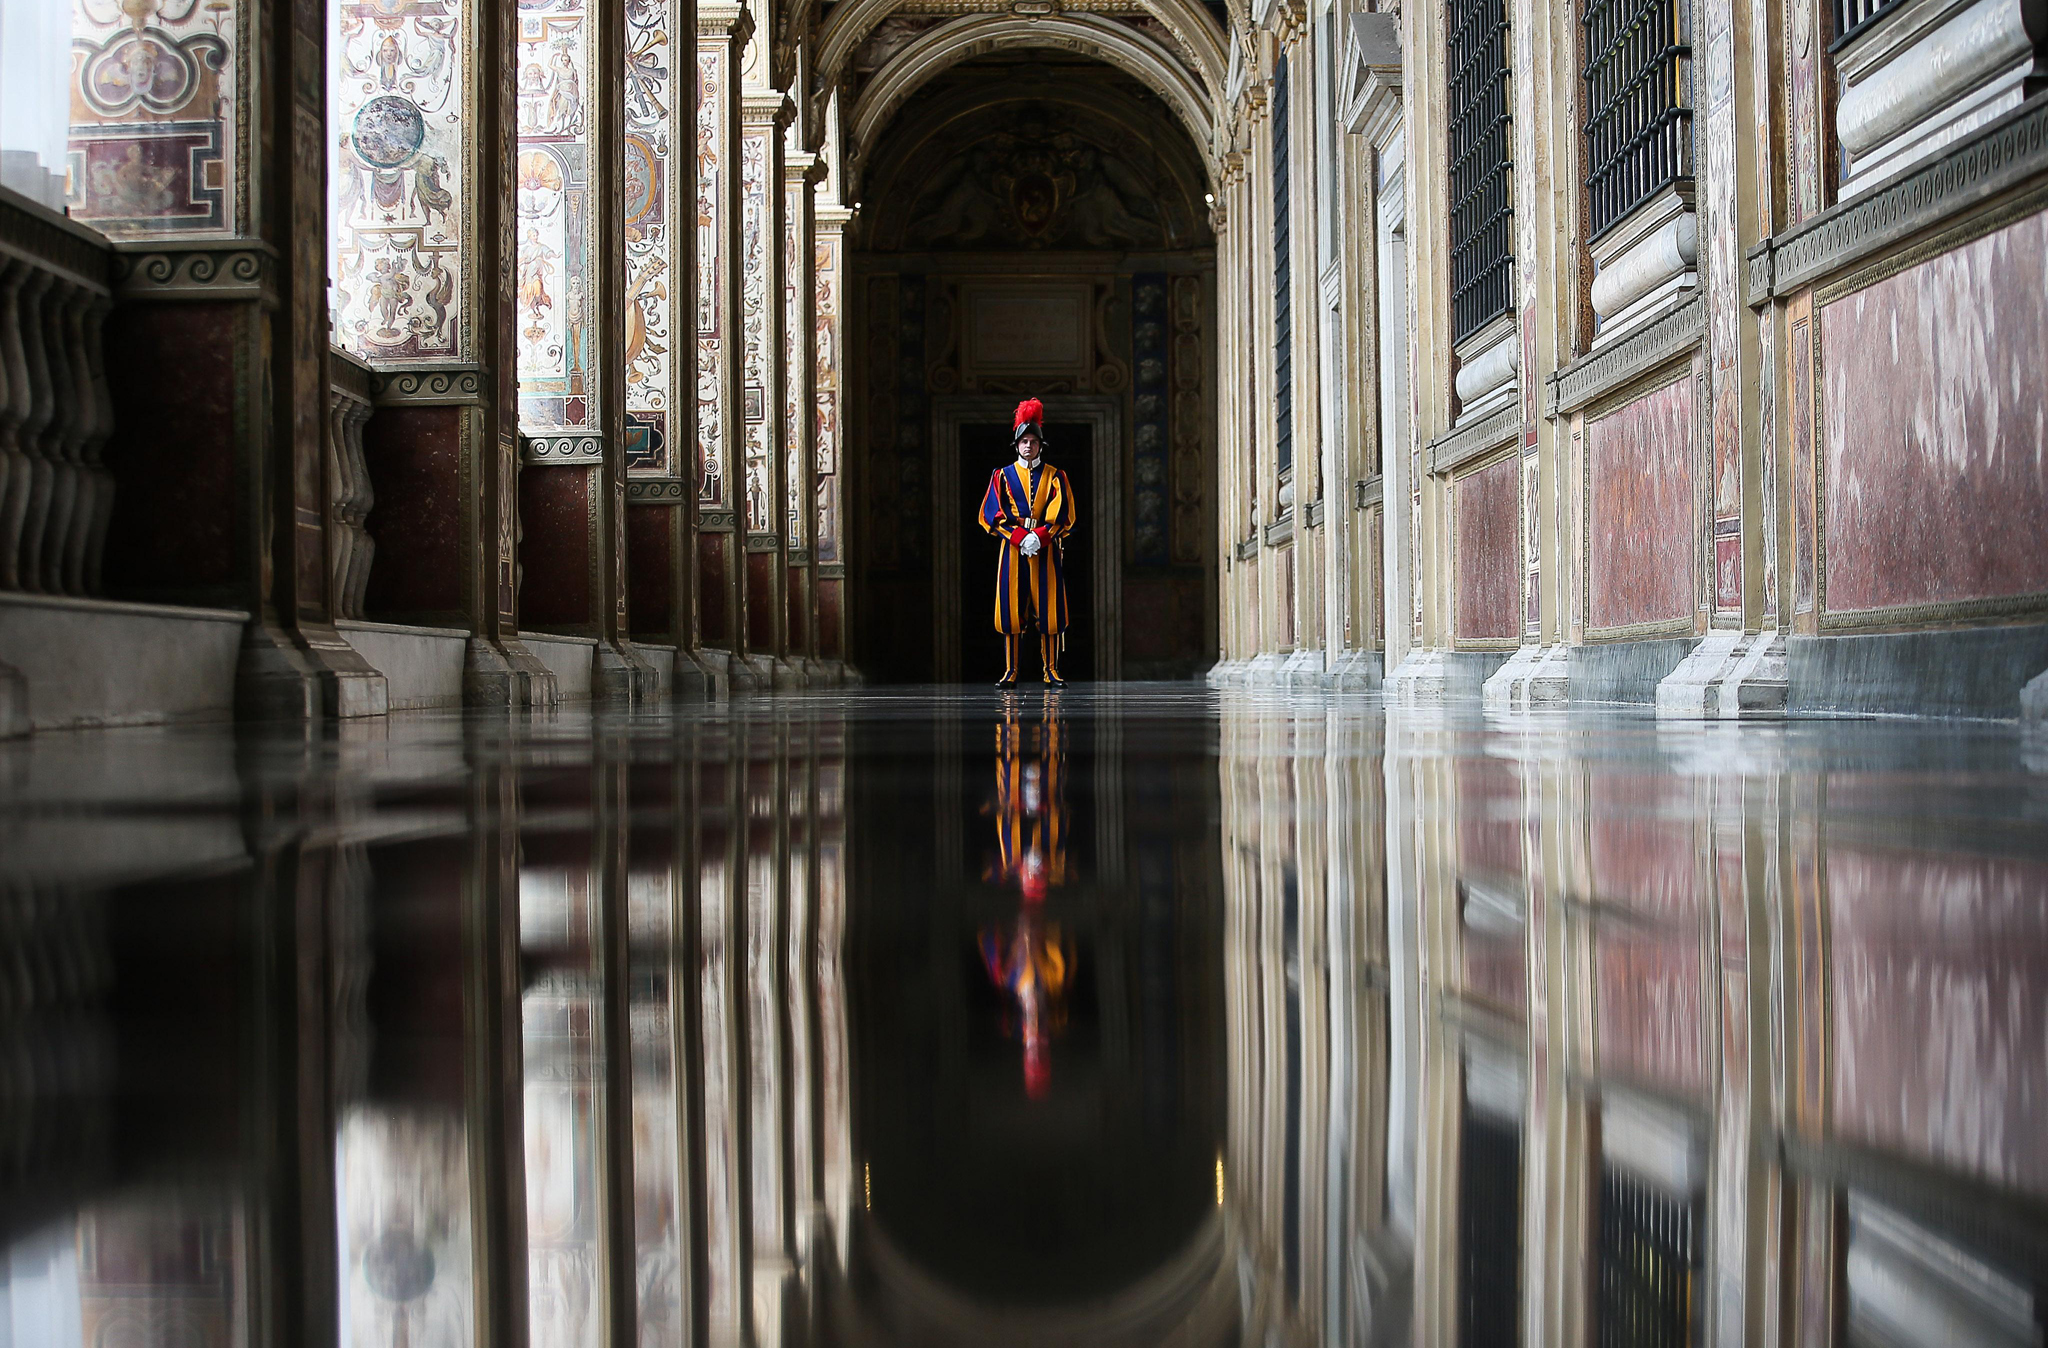 A Vatican Swiss guard stands in the corridor of the entrance of the Bronze Door of the Apostolic Palace, at the Vatican, Thursday, April 7, 2016. The door is the main entrance to the Palace and tradition goes that when a pontiff dies the door is closed by a Swiss guard. (Alessandro Di Meo/Pool Photo via AP)